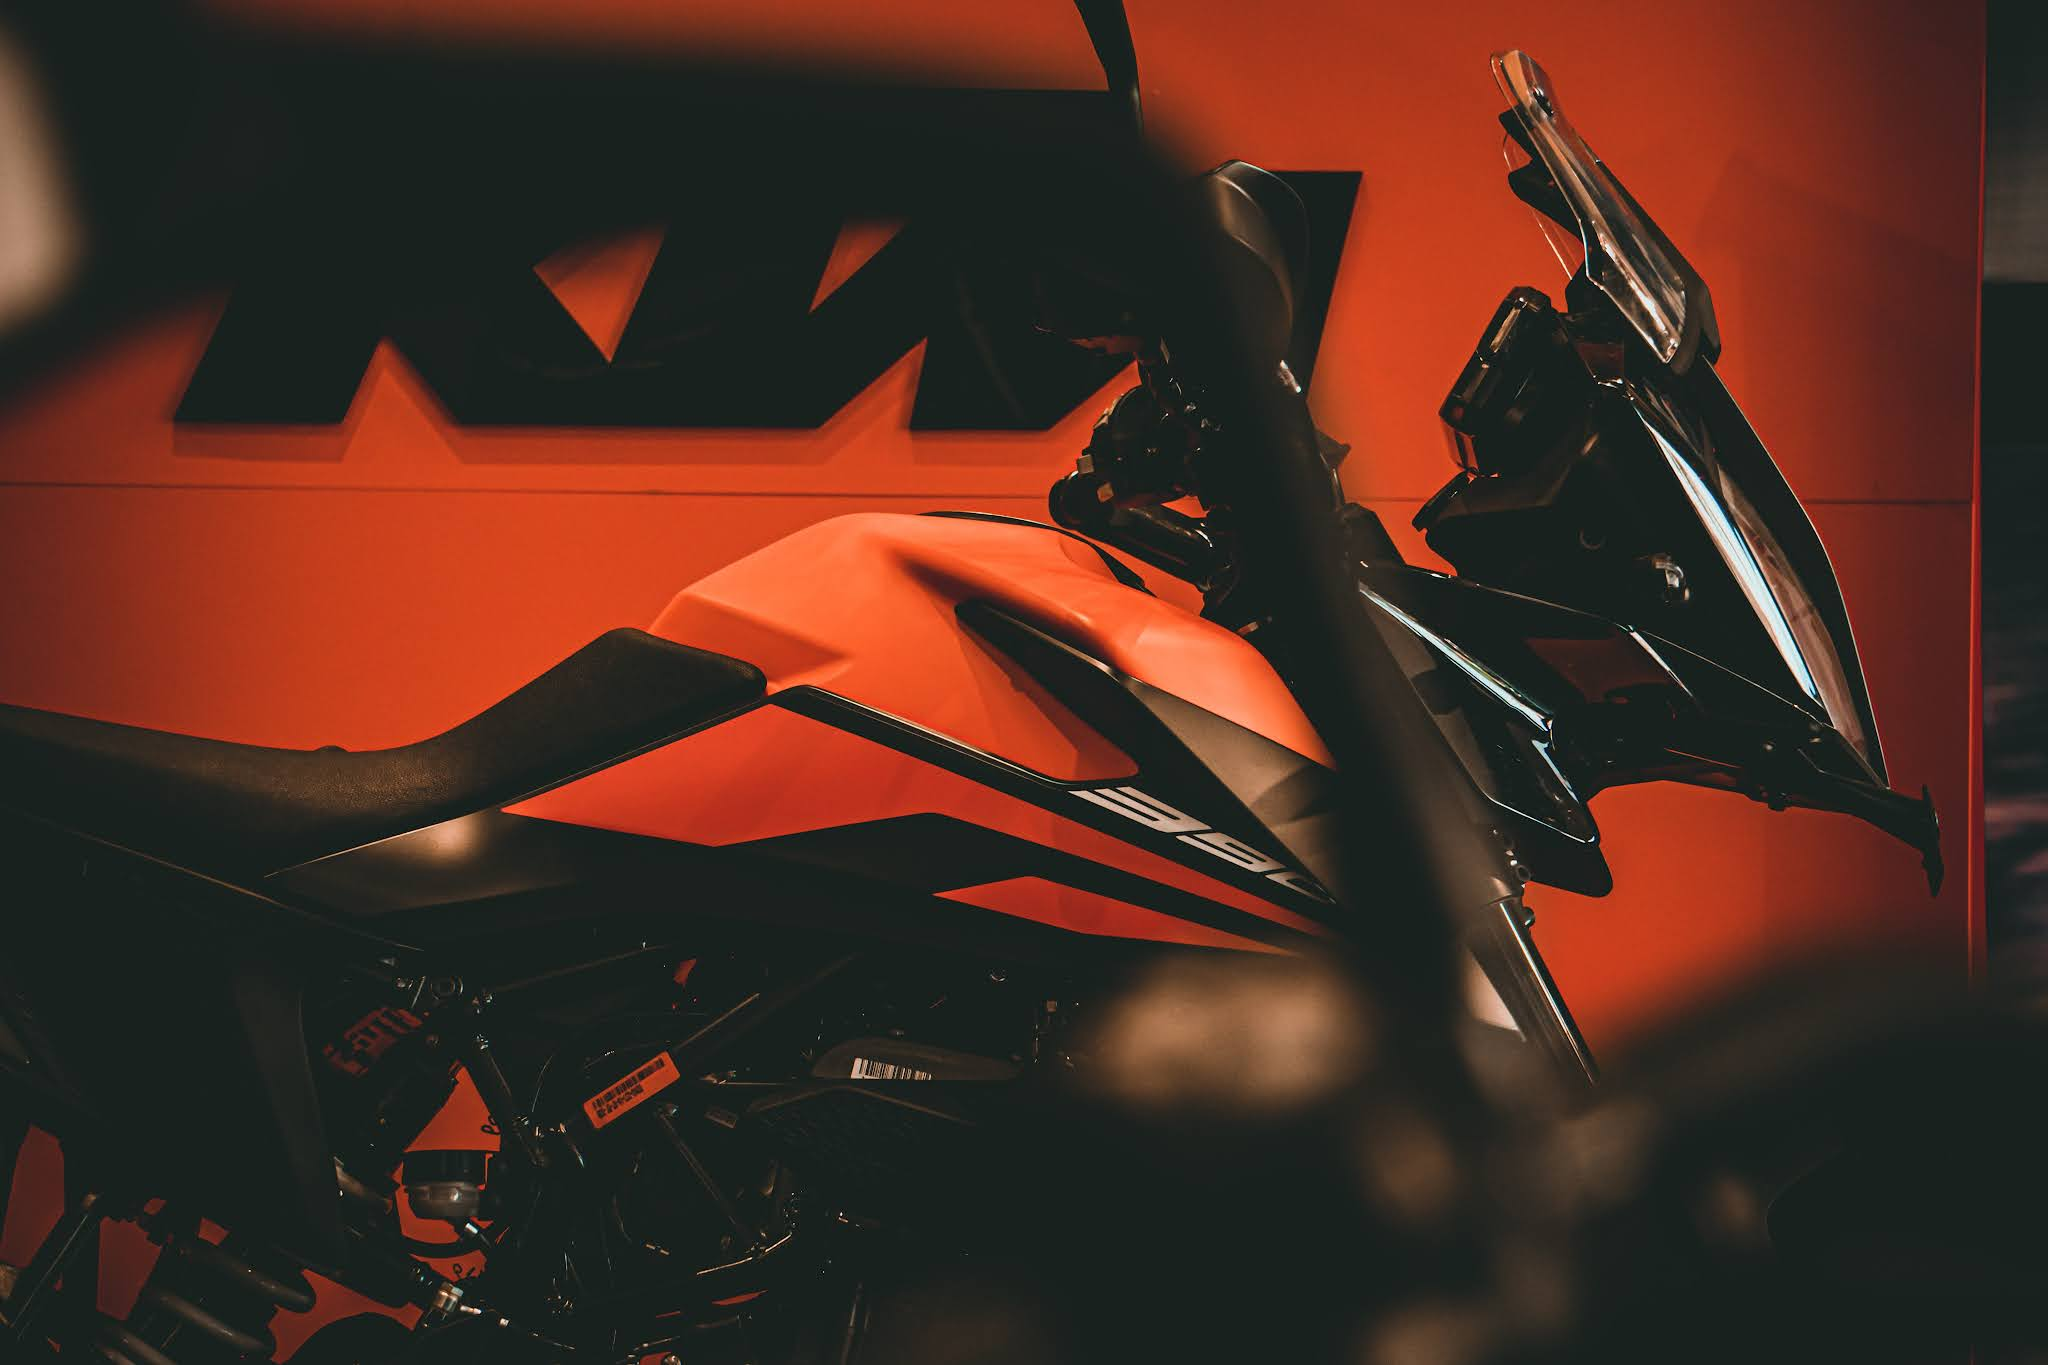 KTM 390 Adventure Price, Mileage, Specifications, Colors, Top Speed and Services